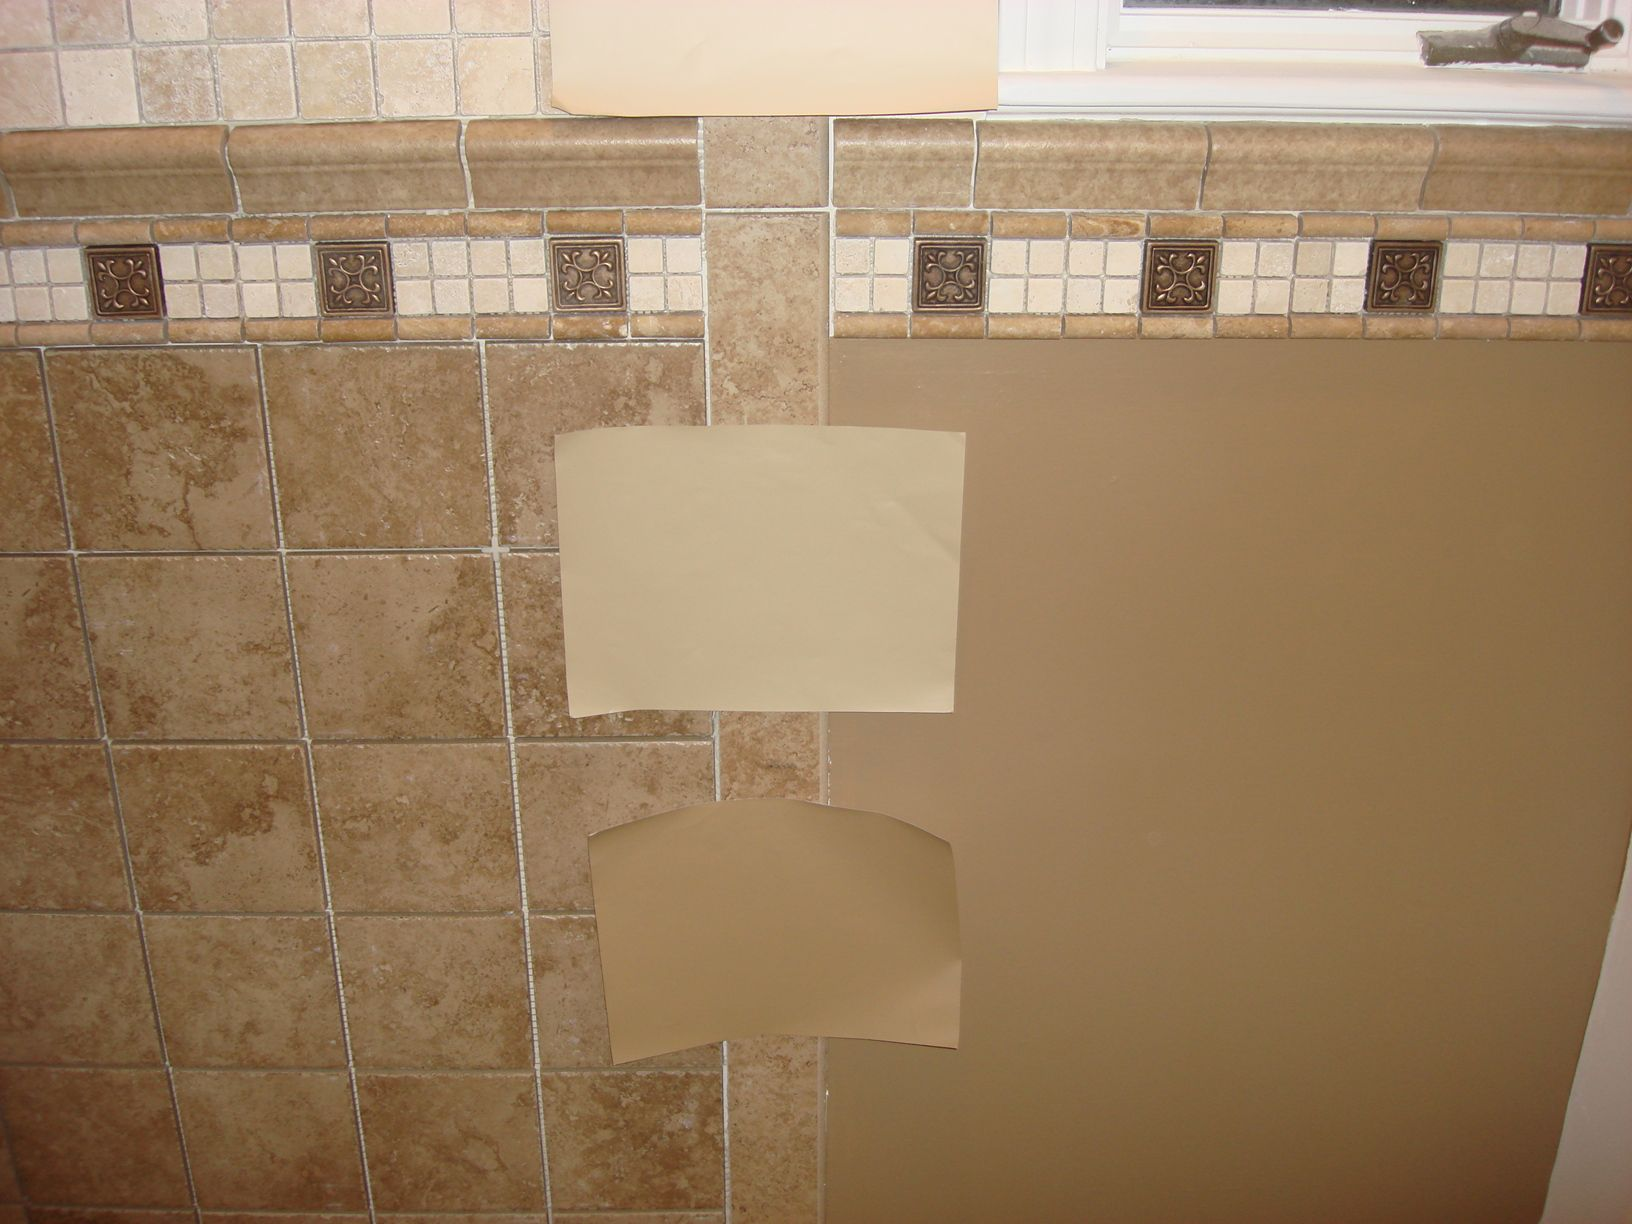 brown color schemes captivating brown mosaic ceramic wall painting tile walls in bathroom 1632 x 1224 disclaimer we do not own any of these pictures graphics home depot bathroom